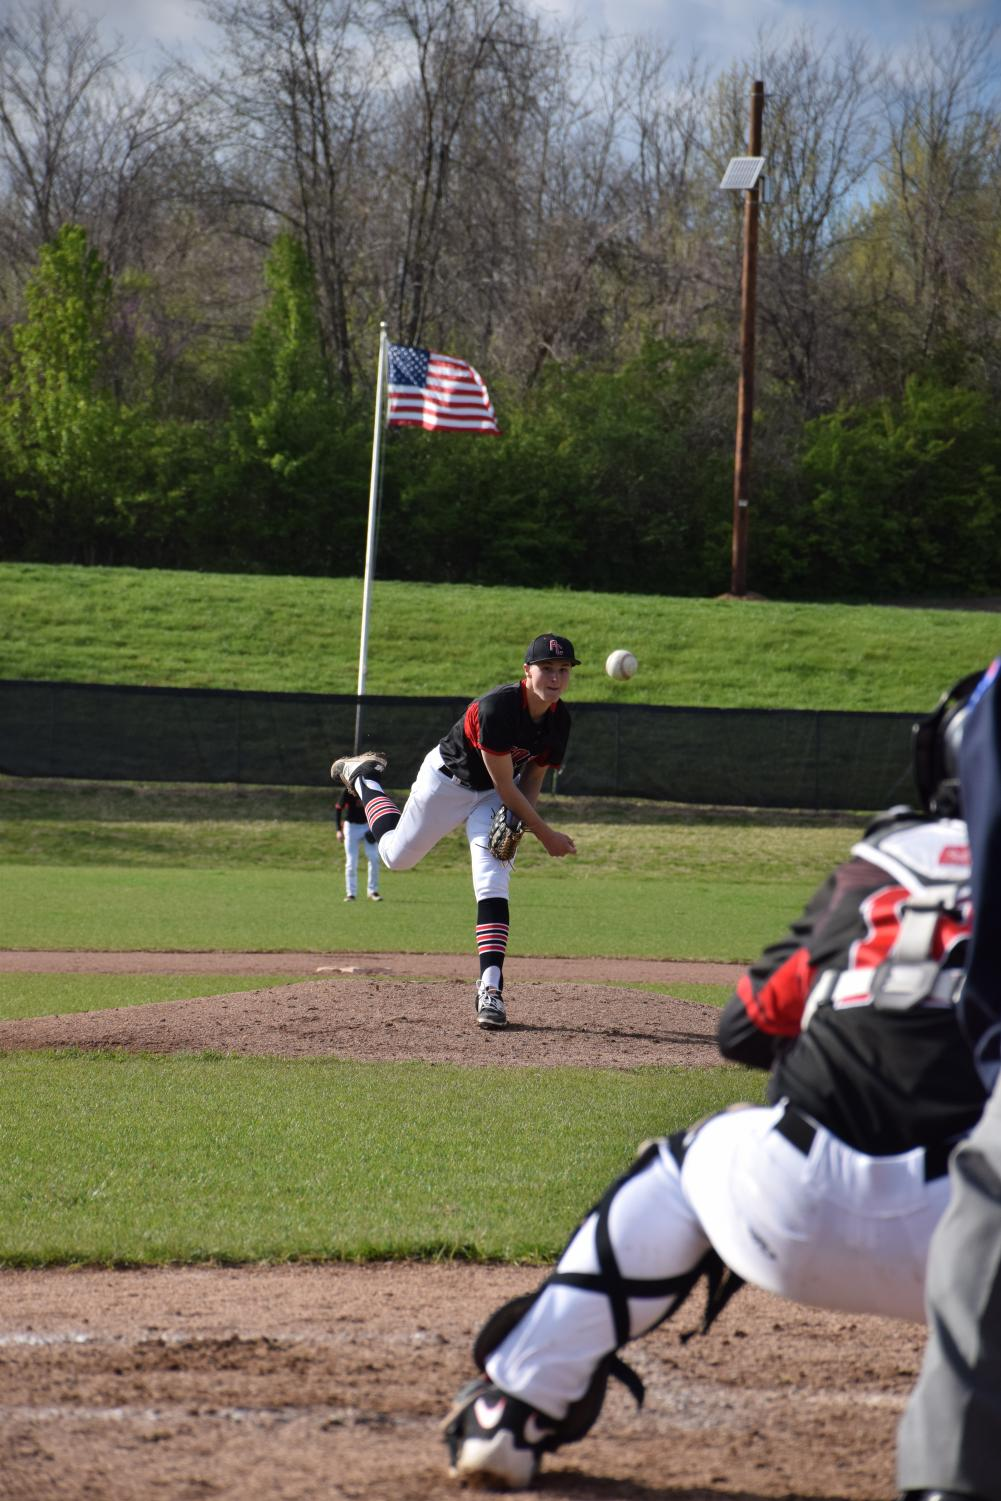 Sophomore Anthony Klein pitches to catcher Carter Spradling.